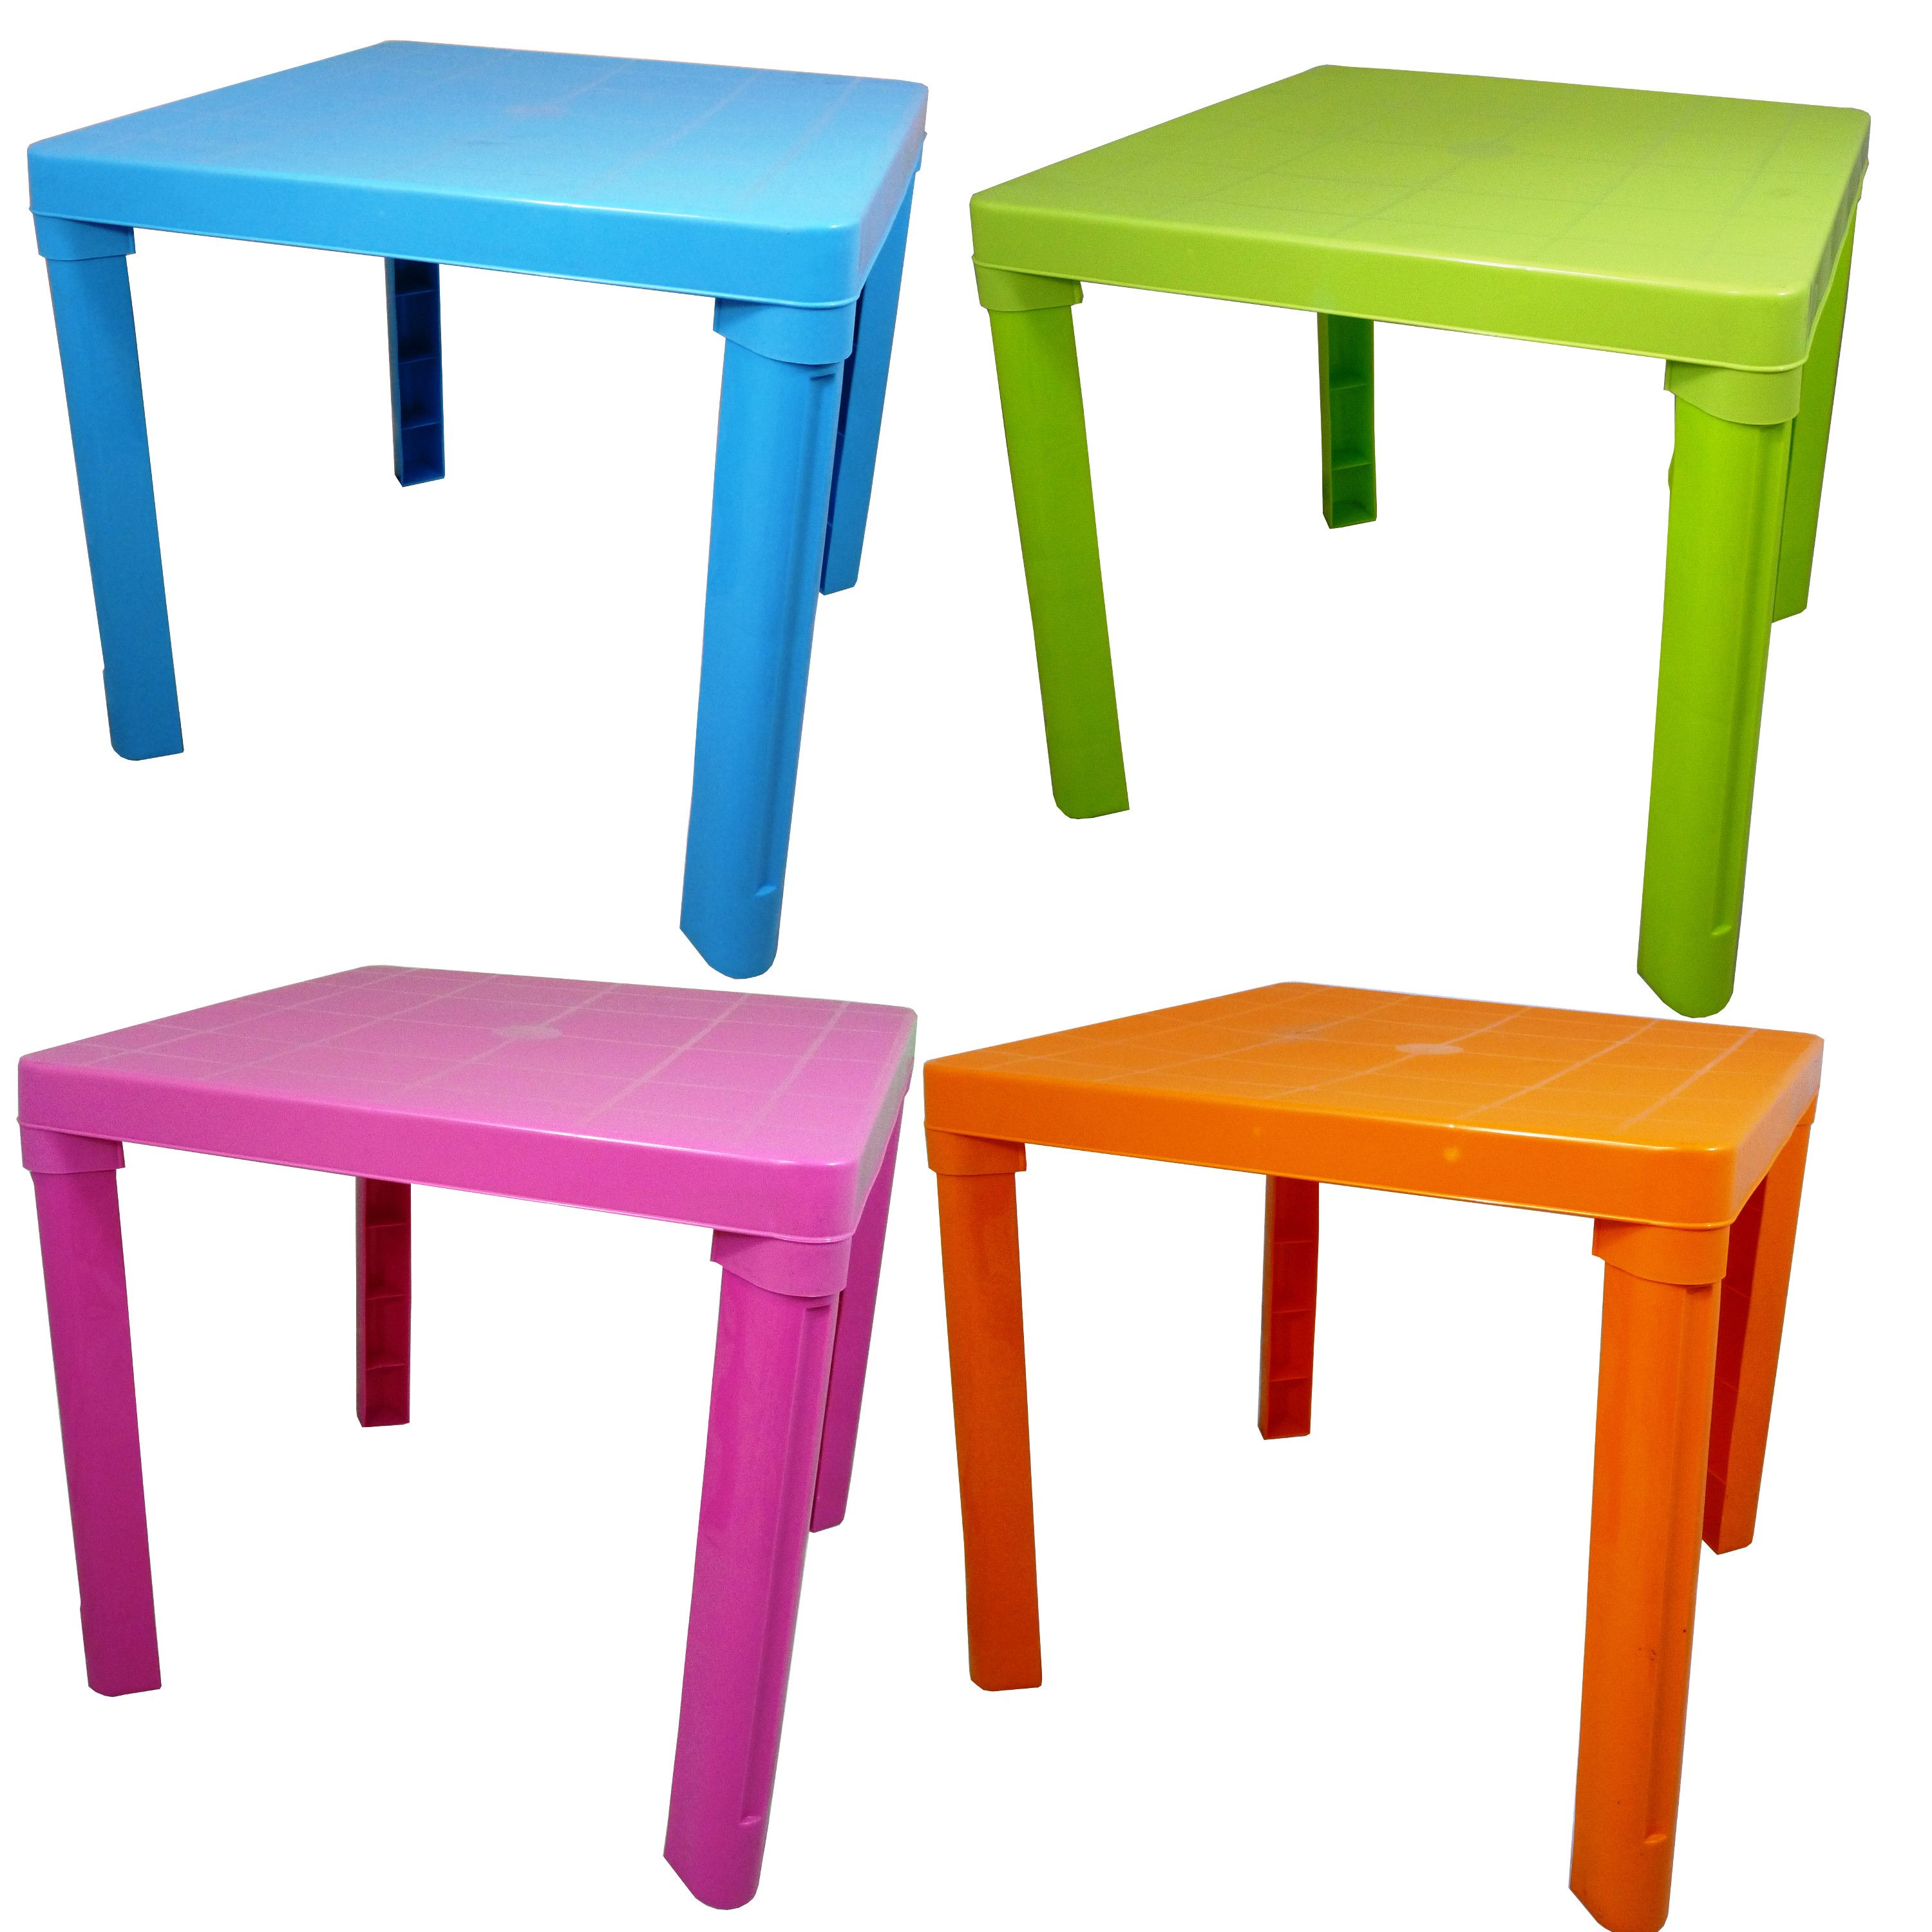 Kids Children Plastic Table 4 Colours Home Garden Picnic ...